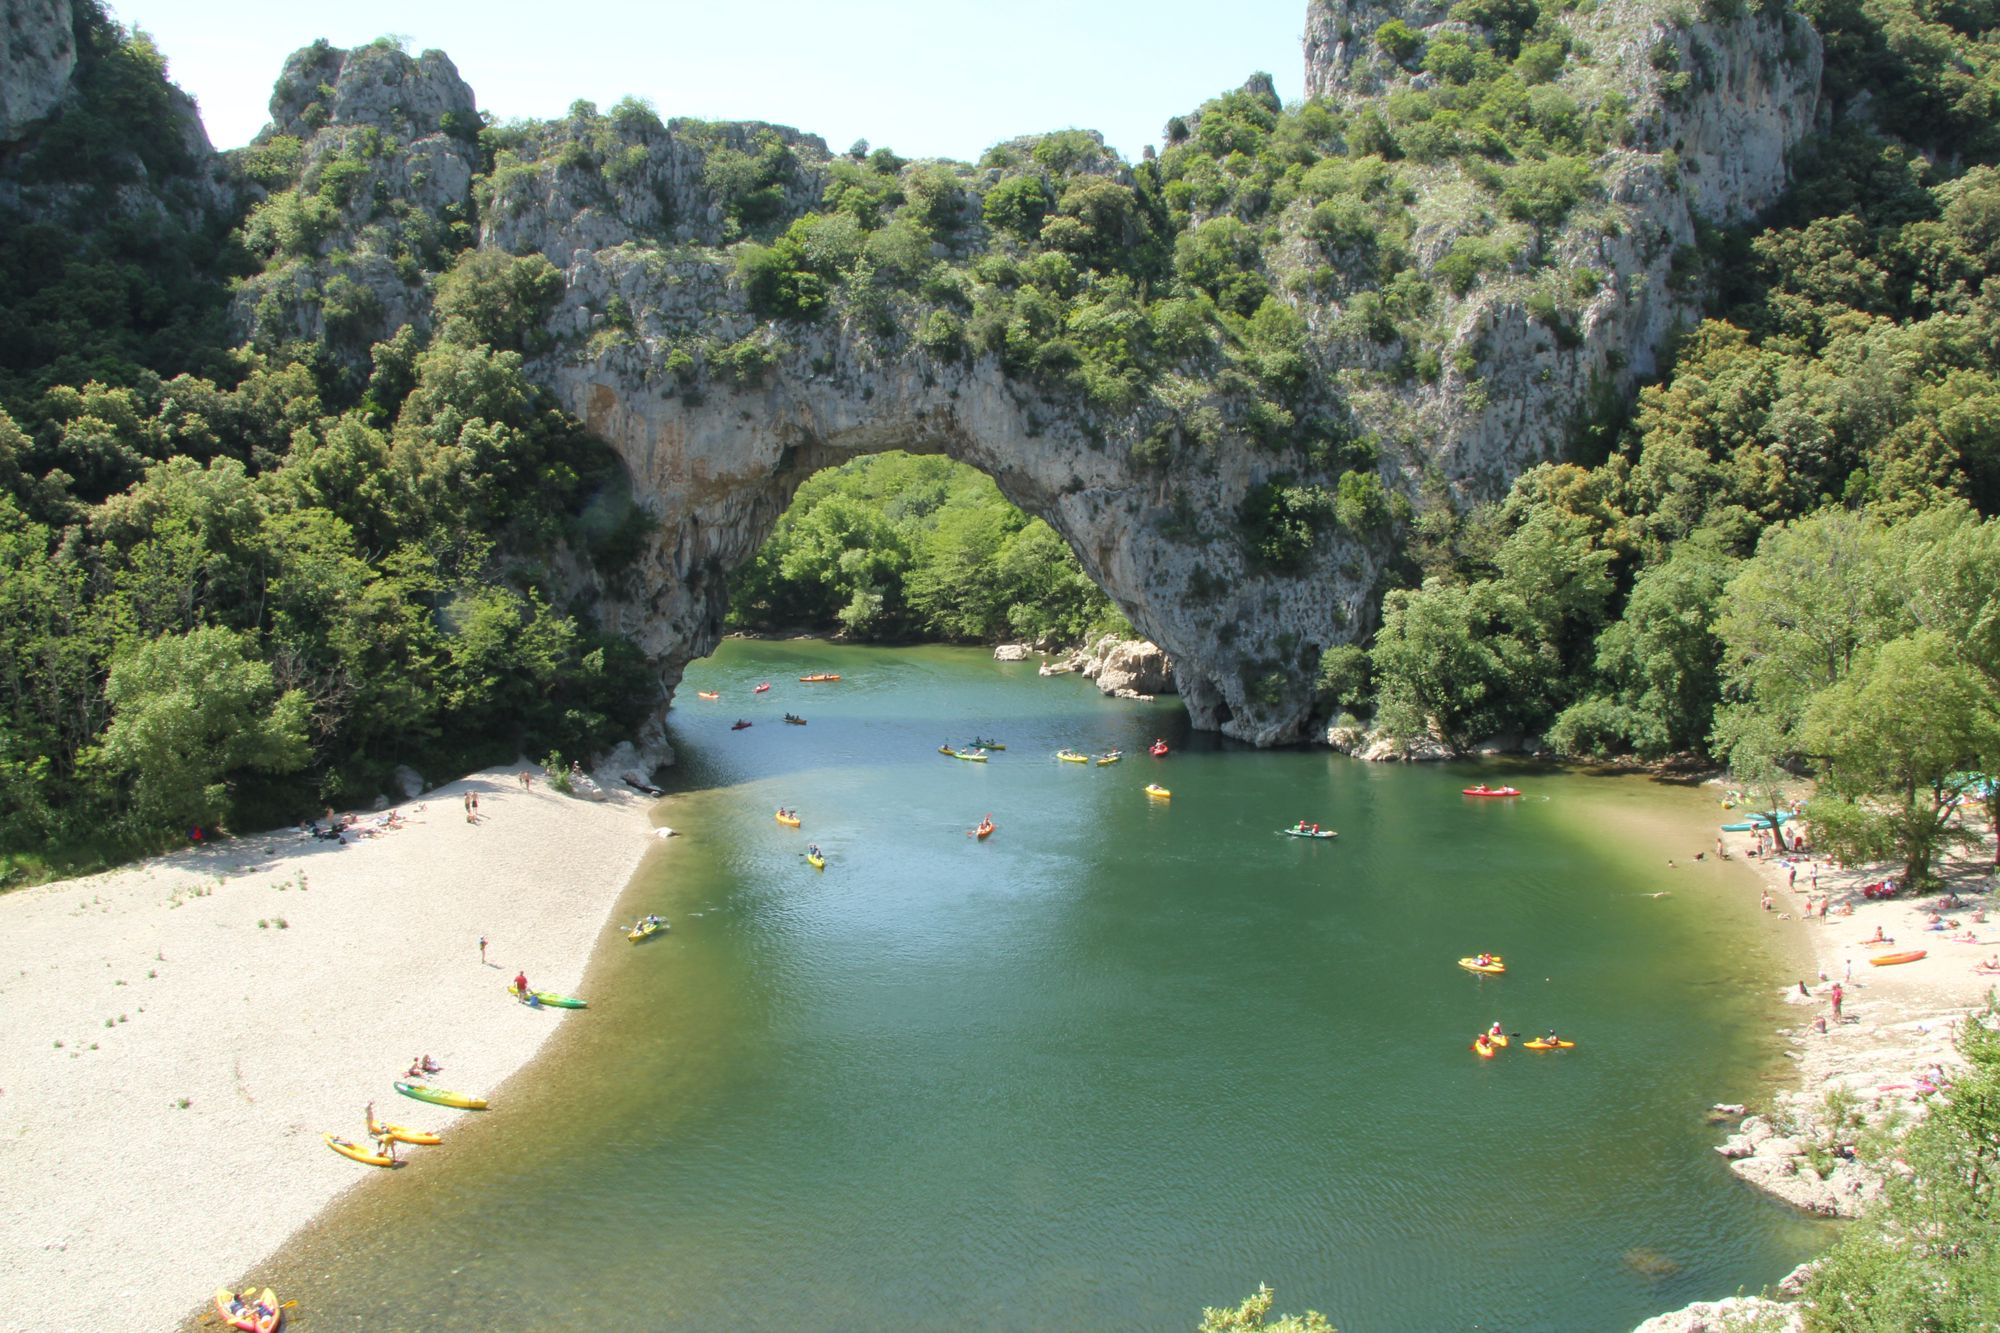 Camping and glamping right next to the Gorges de l'Ardèche, a camping field, luxury yurts, safari tents, a beautiful river, and welcoming hosts.